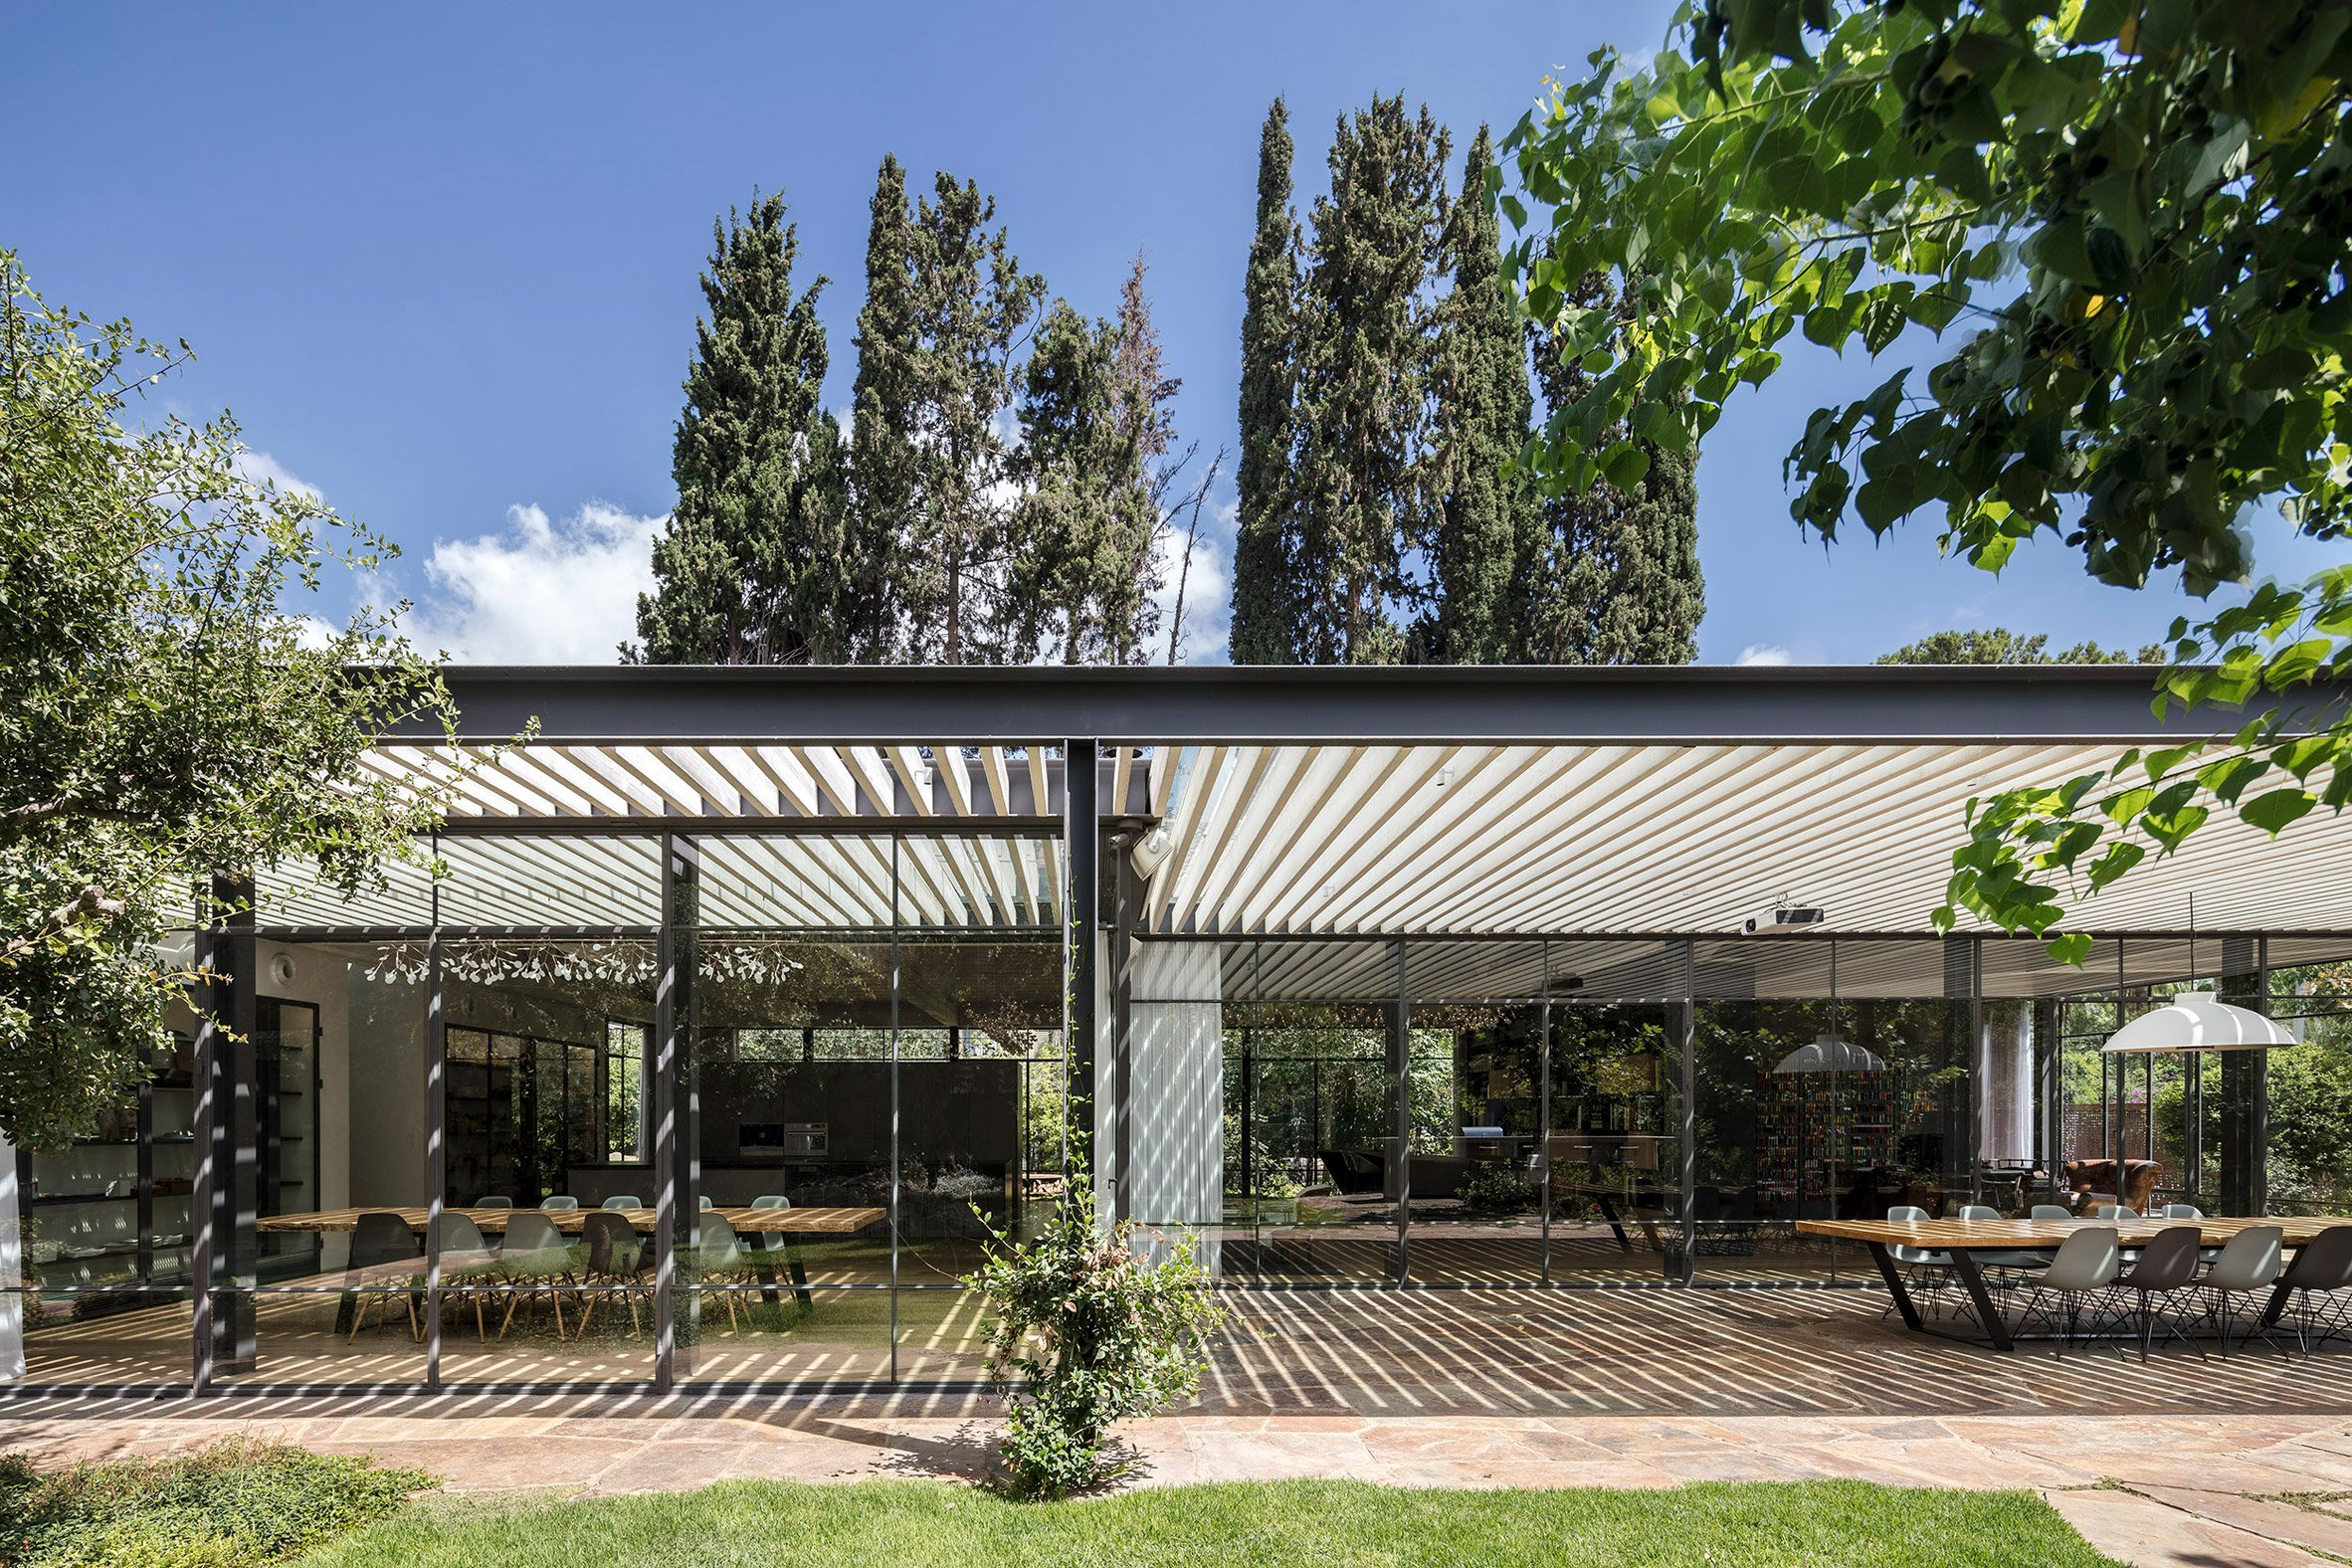 Glass walls and covered walkways intertwine Israeli house and garden